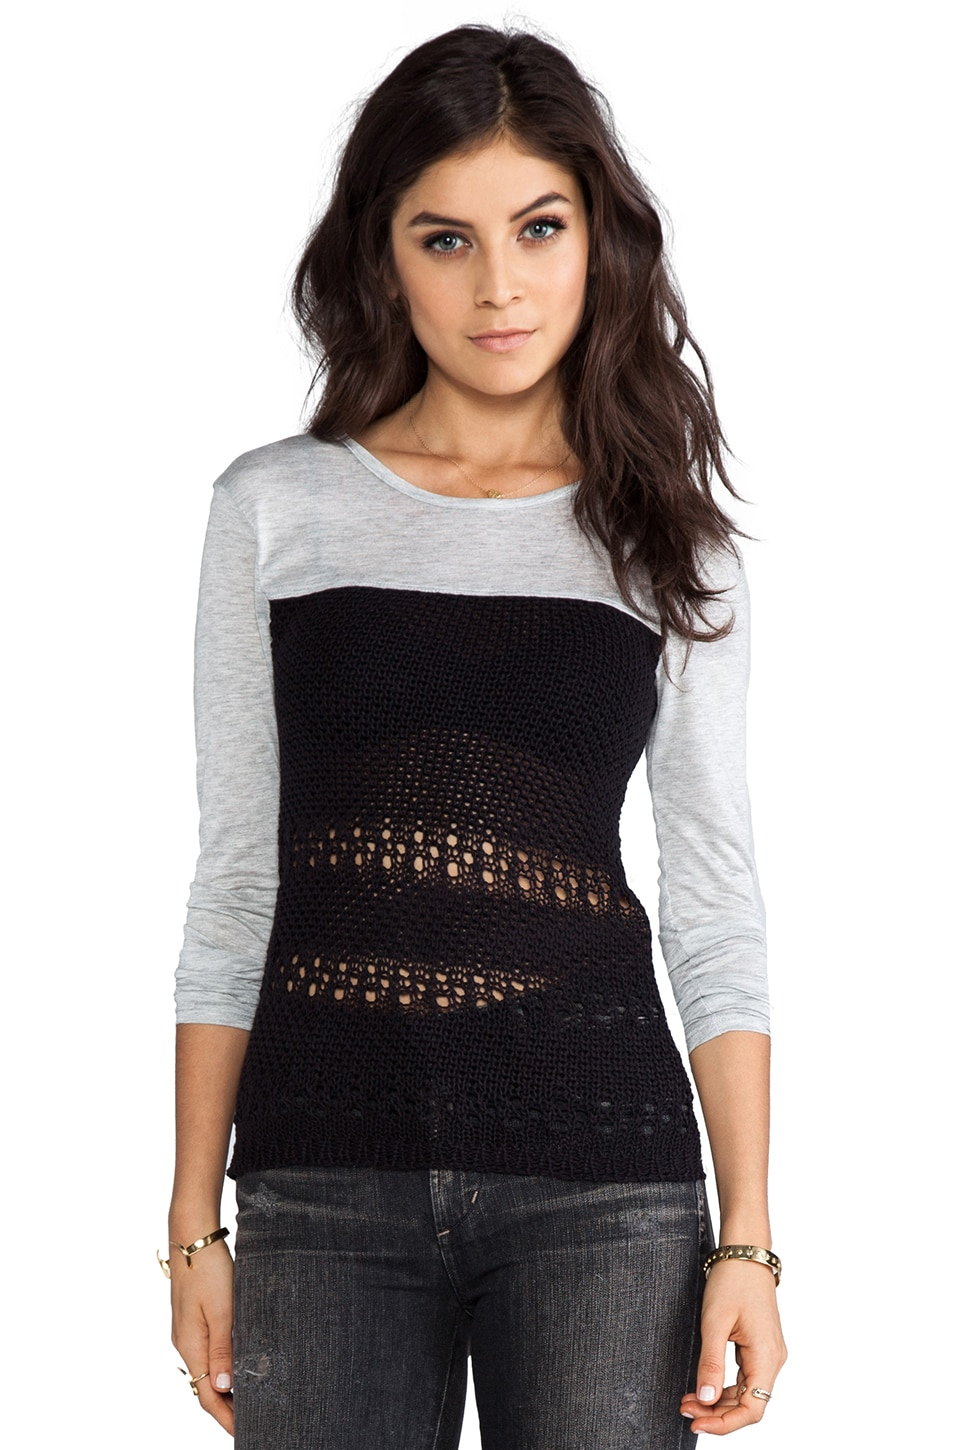 WOODLEIGH Dakota Top in Heather/Black